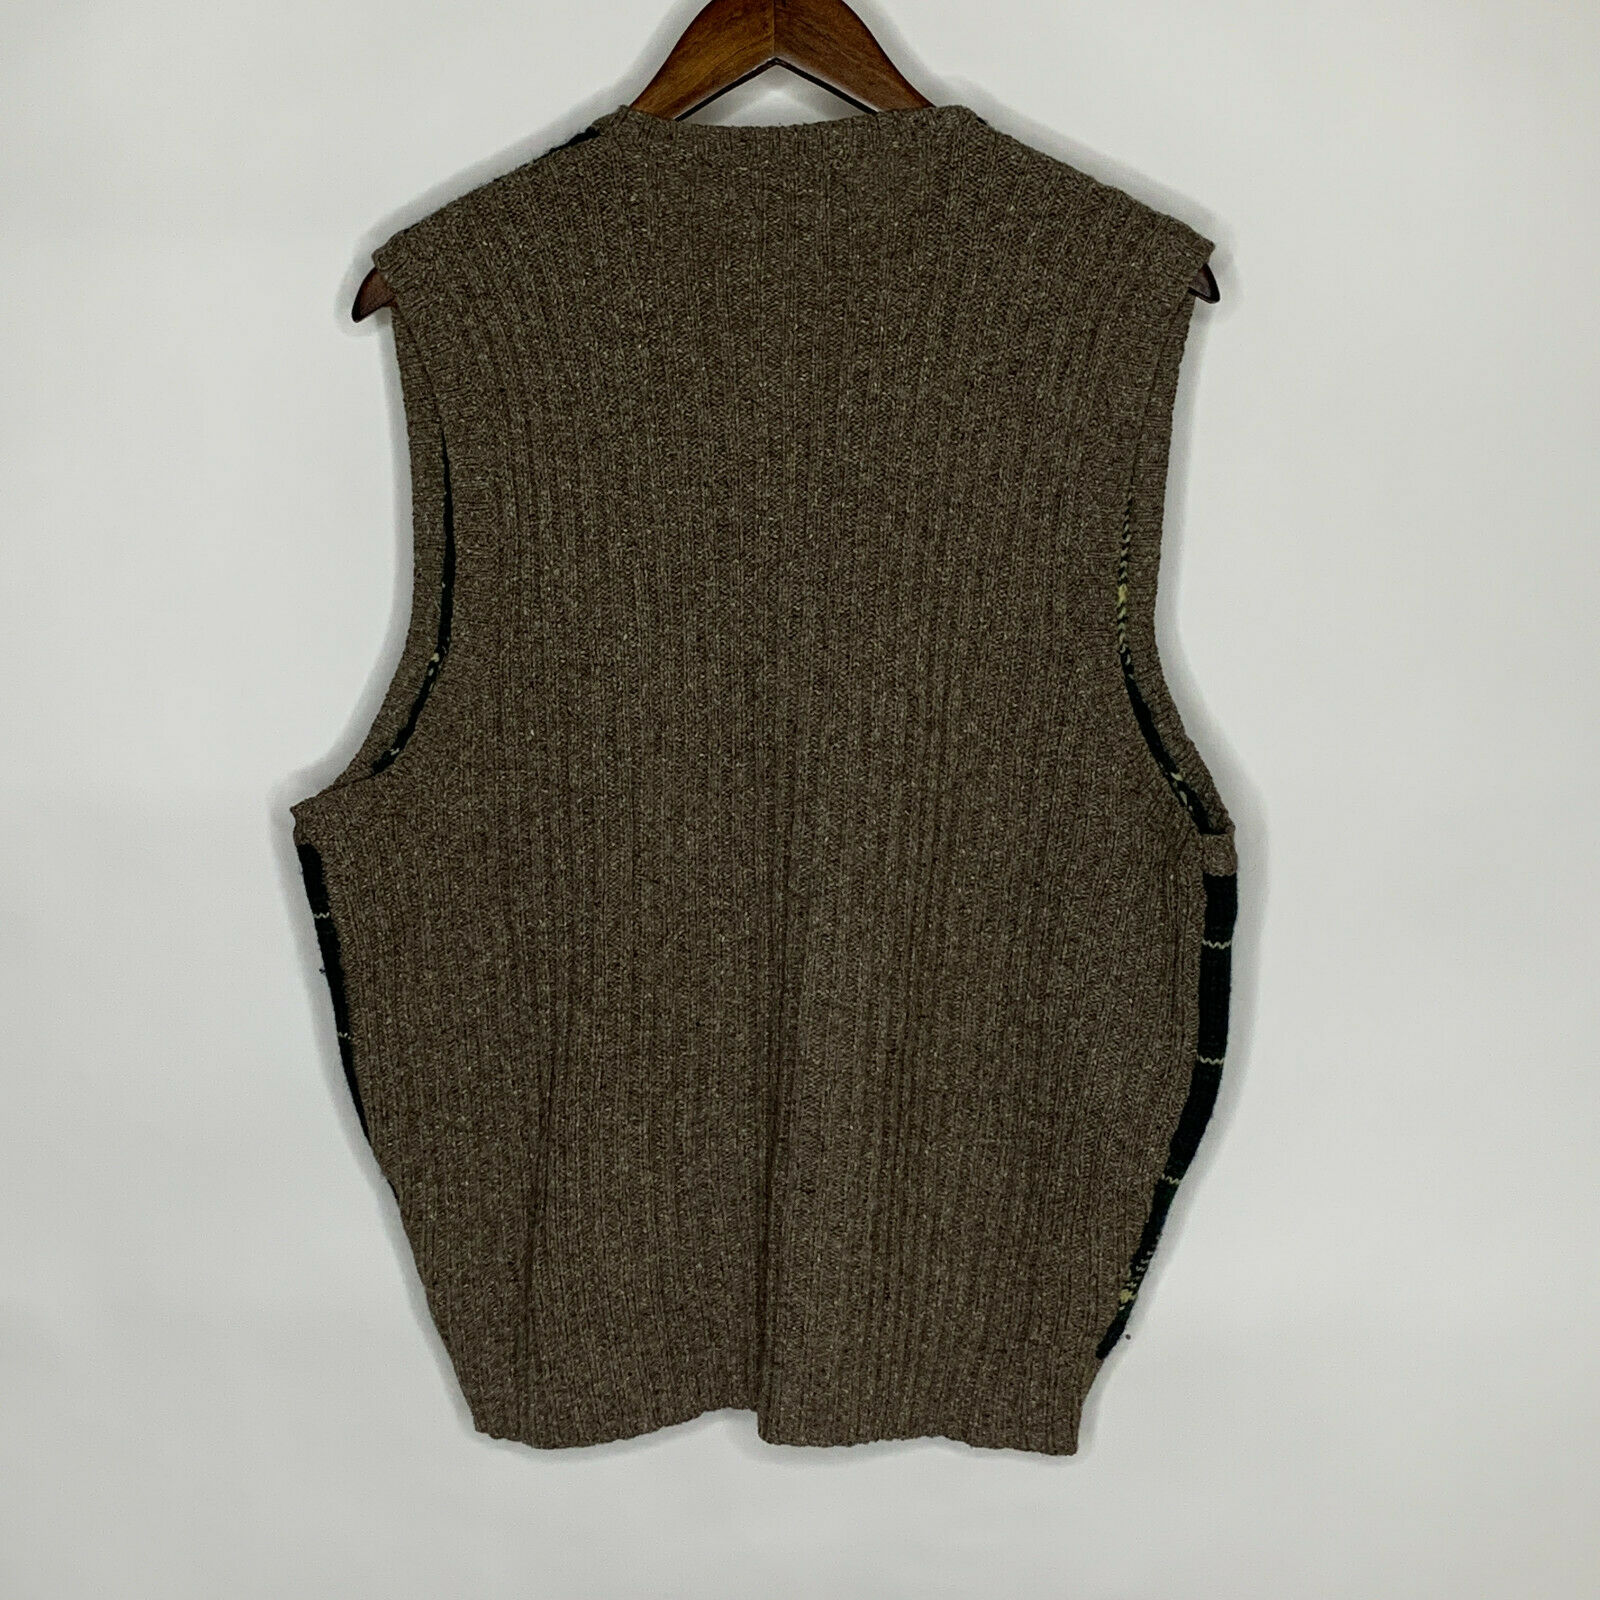 Polo by Ralph Lauren Green Plaid Sweater Vest Woo… - image 3